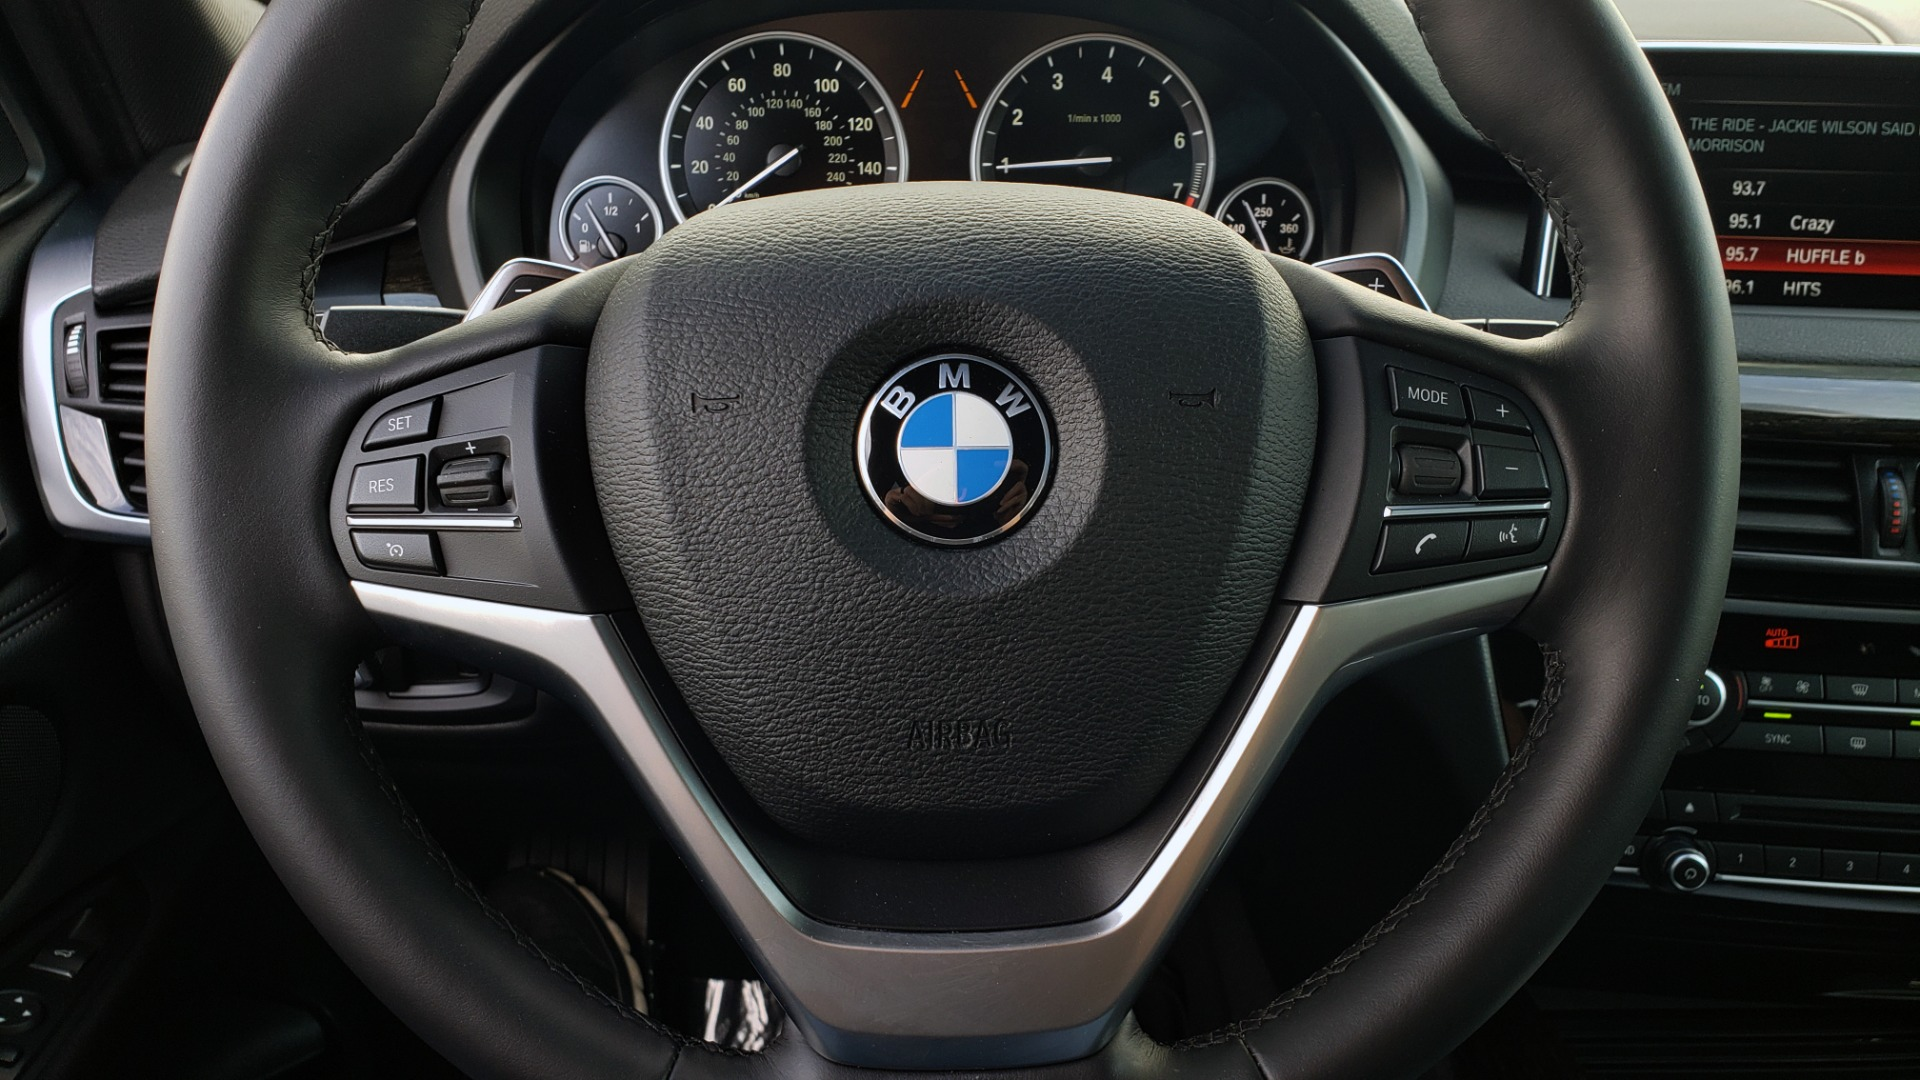 Used 2018 BMW X5 XDRIVE35I PREMIUM / NAV / PANO-ROOF / DRIVER ASST / REARVIEW for sale Sold at Formula Imports in Charlotte NC 28227 44